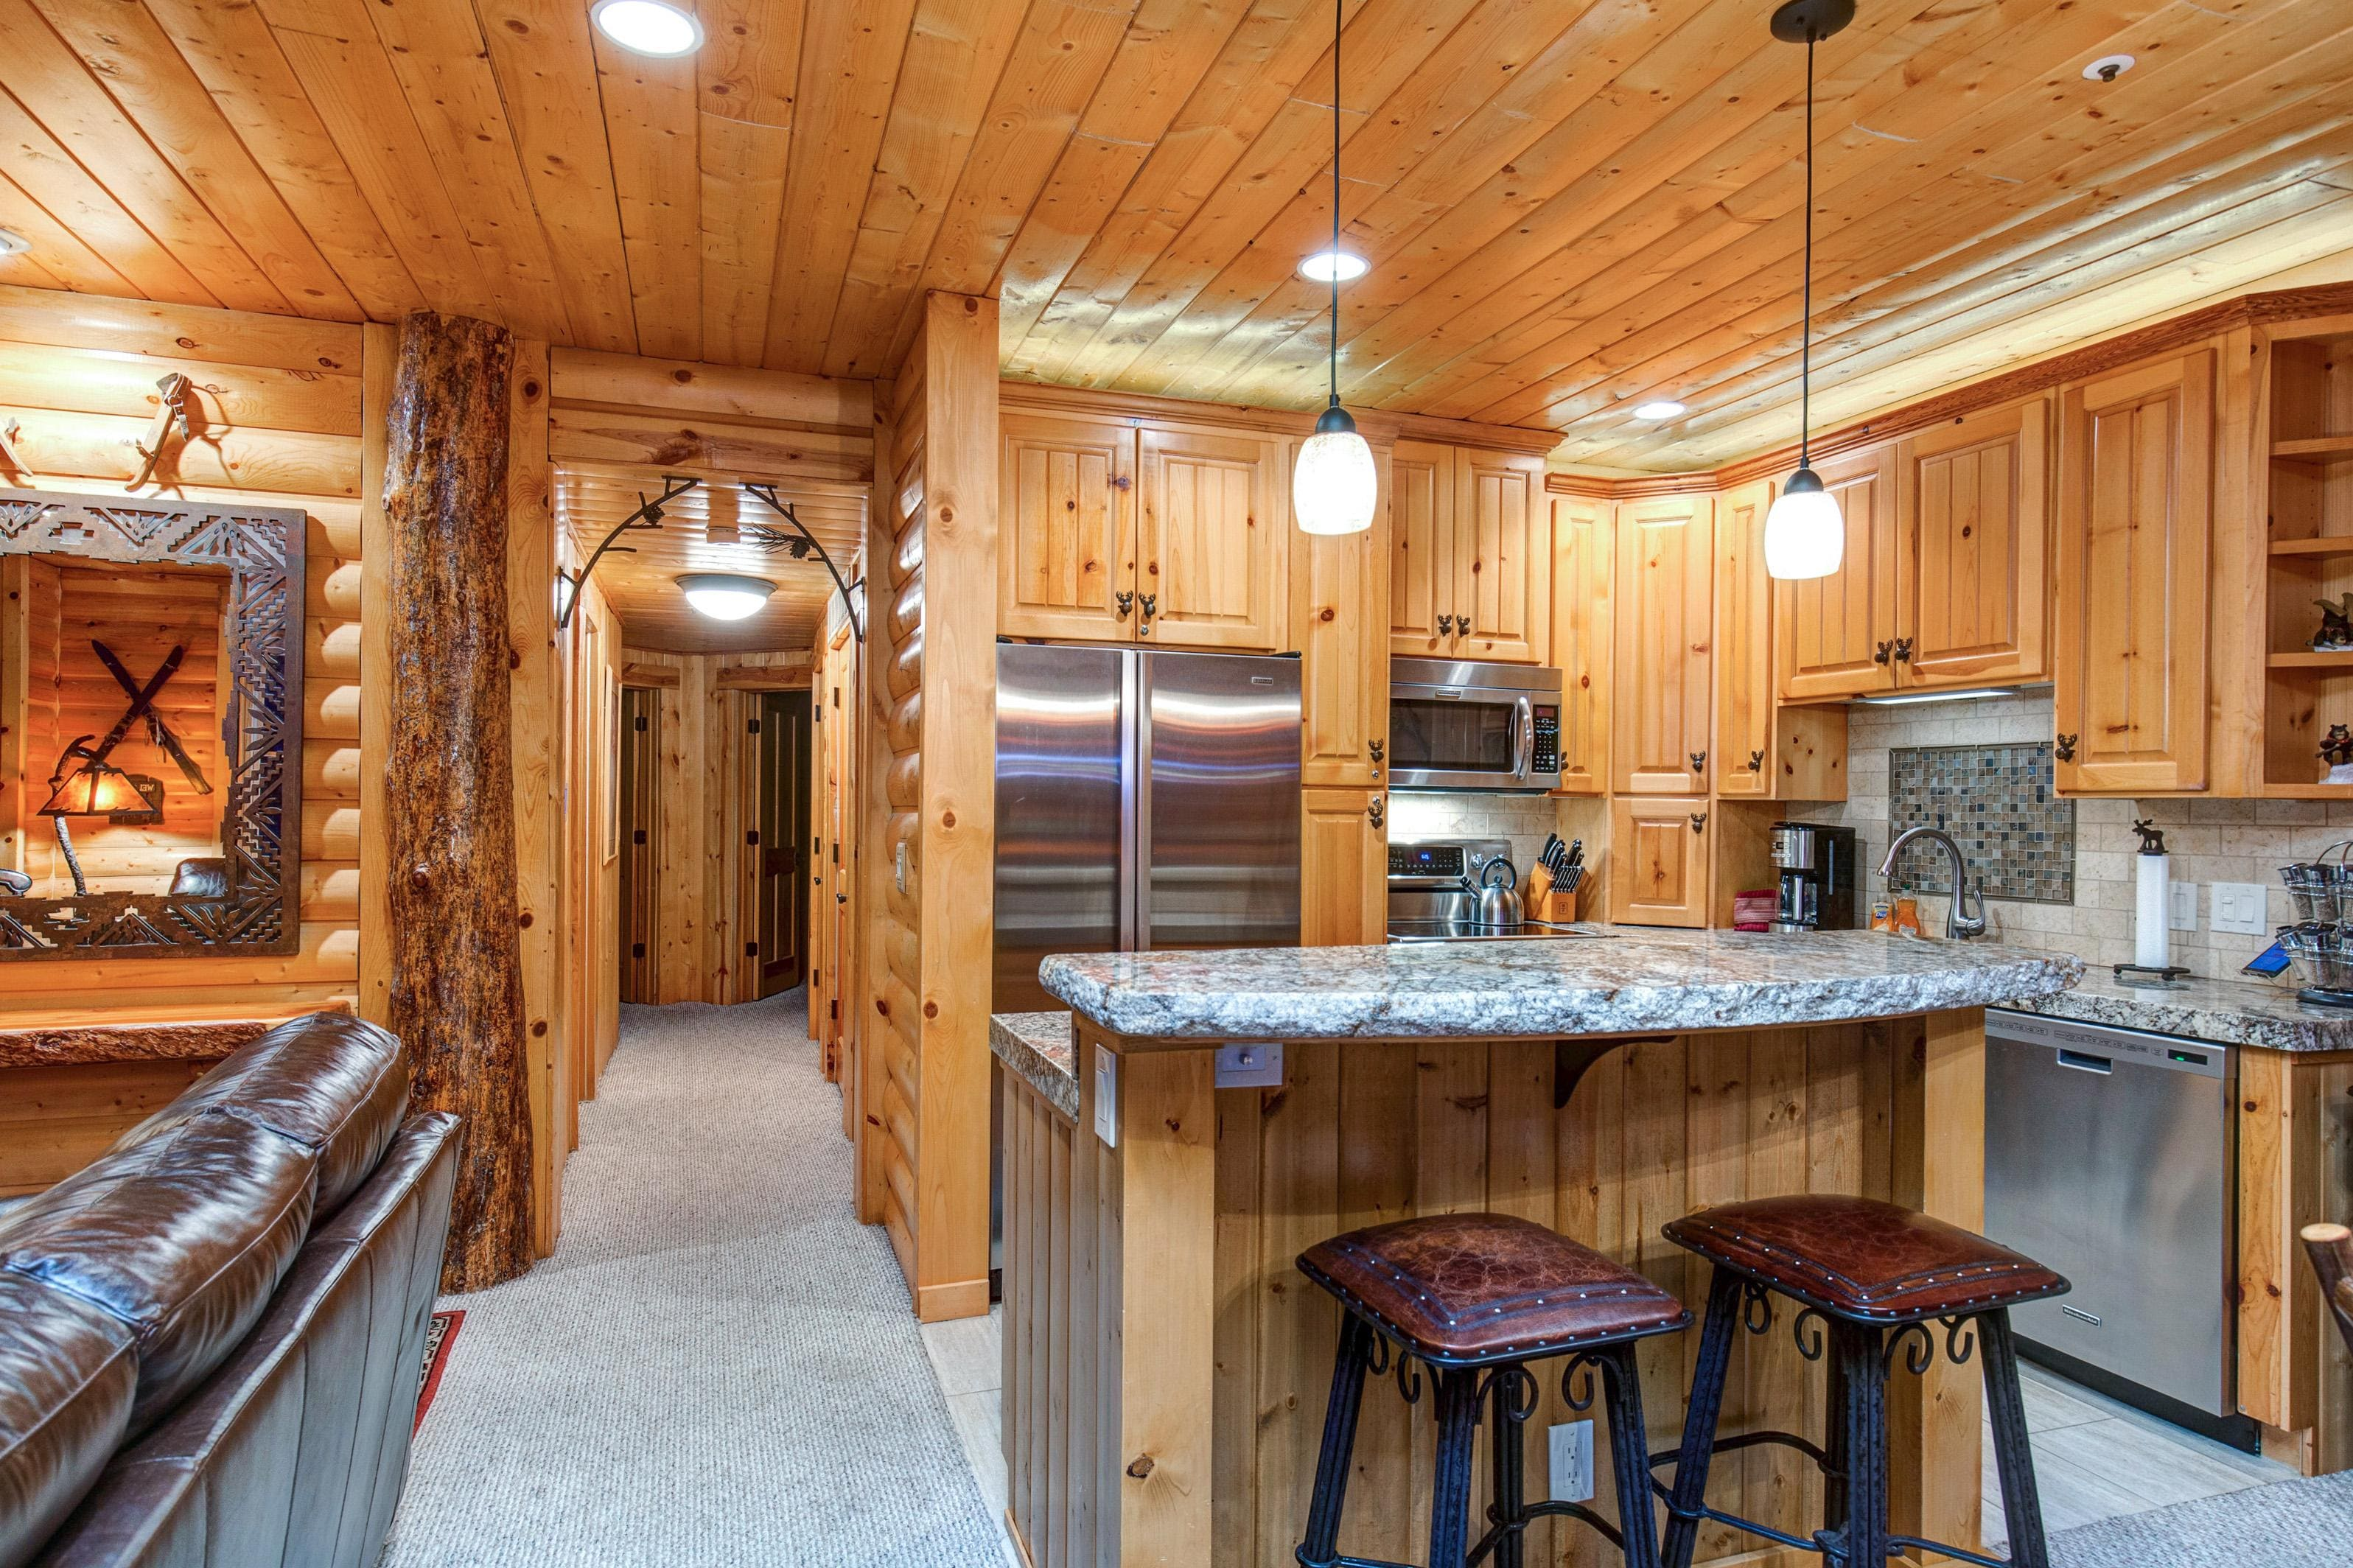 The fully equipped kitchen features granite countertops and stainless appliances, including double ovens.